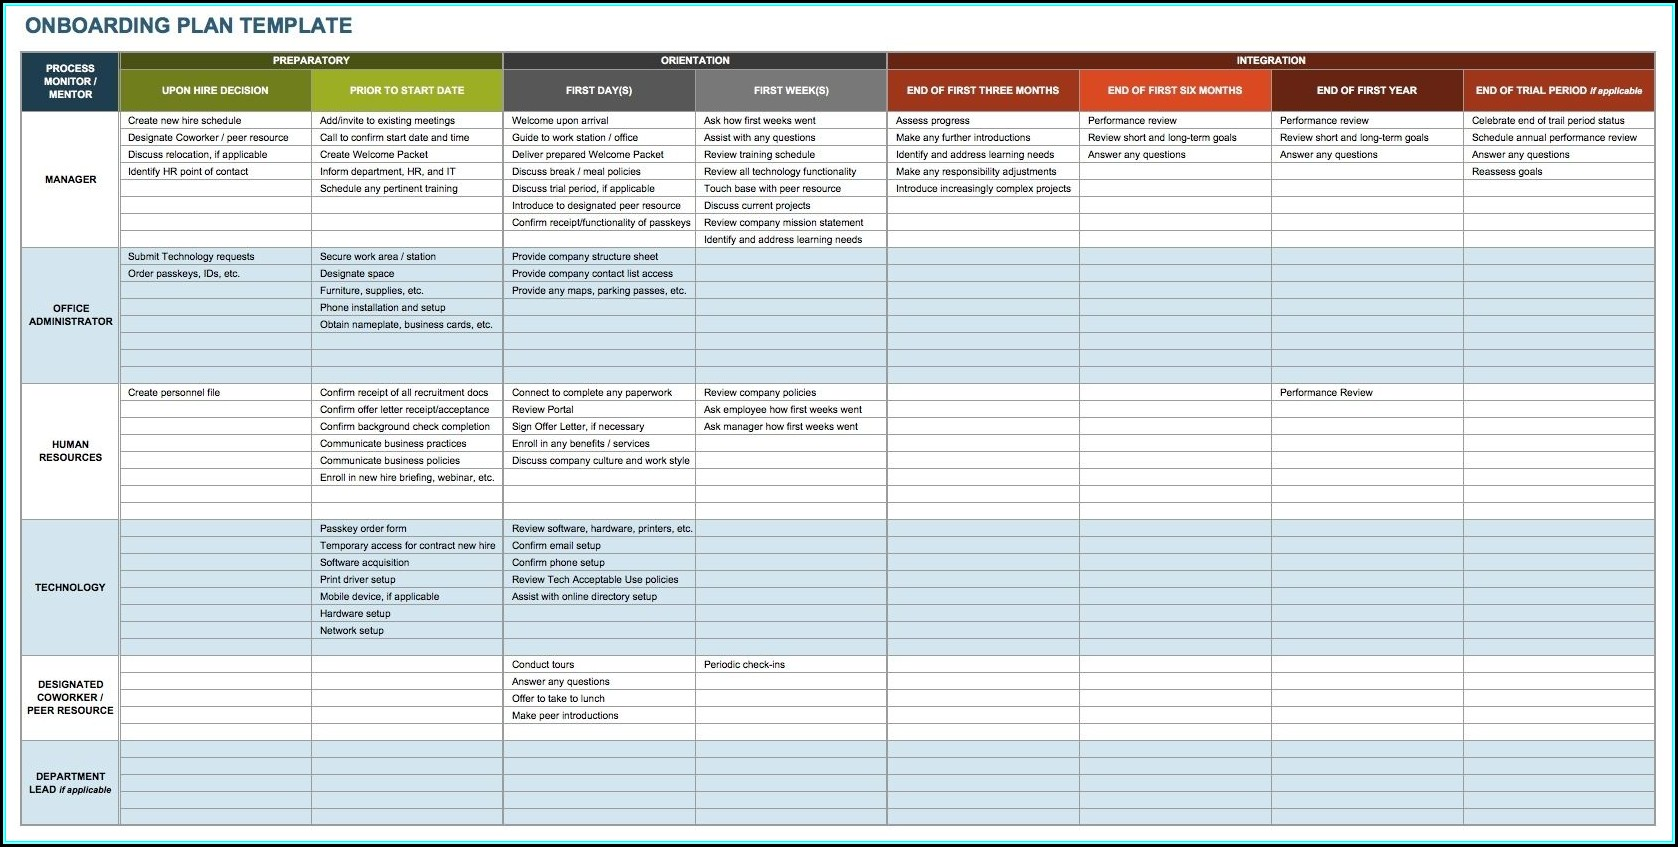 Onboarding Process Template